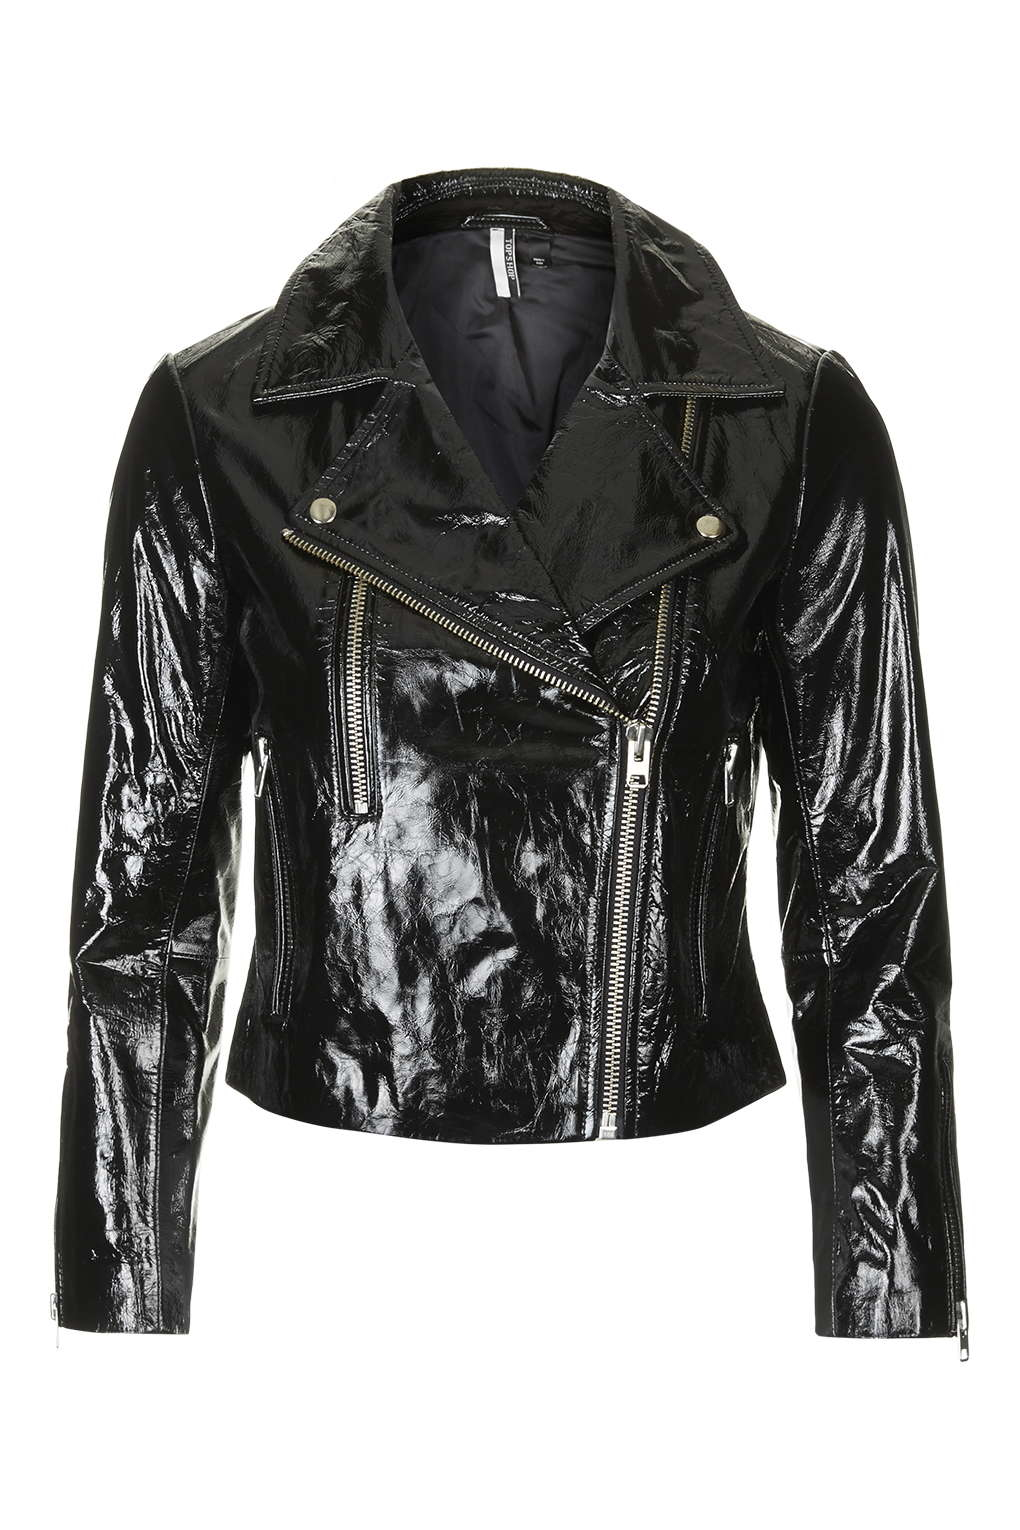 Patent Leather Jacket Mens Cairoamani Com